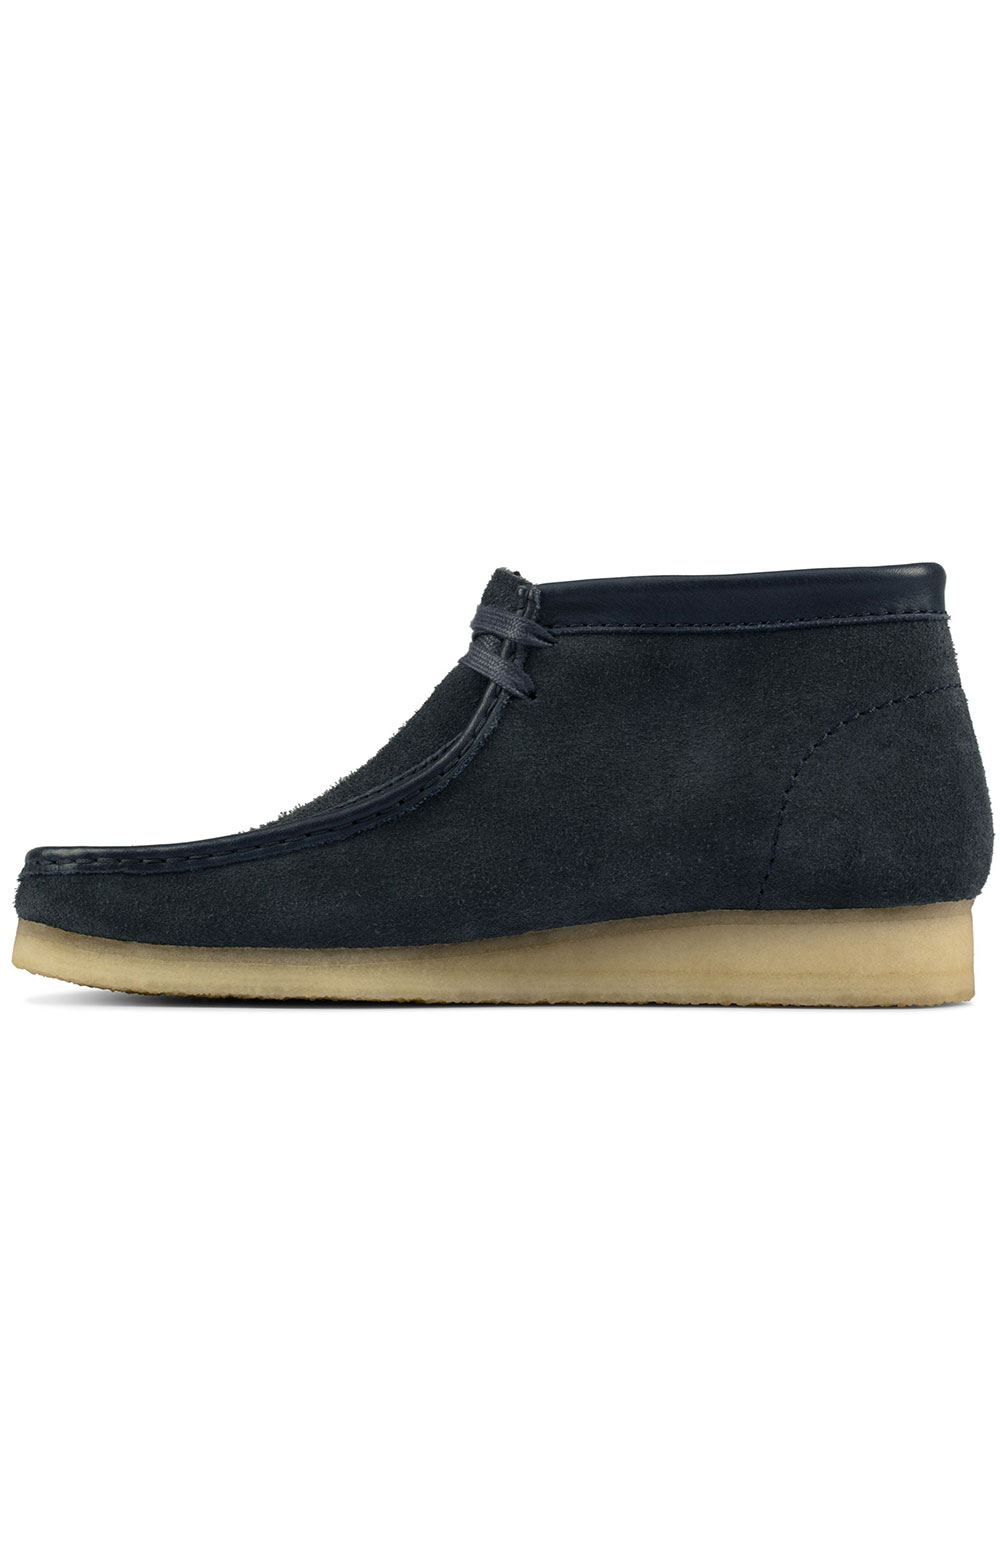 (26155048) Wallabee Boots - Navy Hairy Suede  5